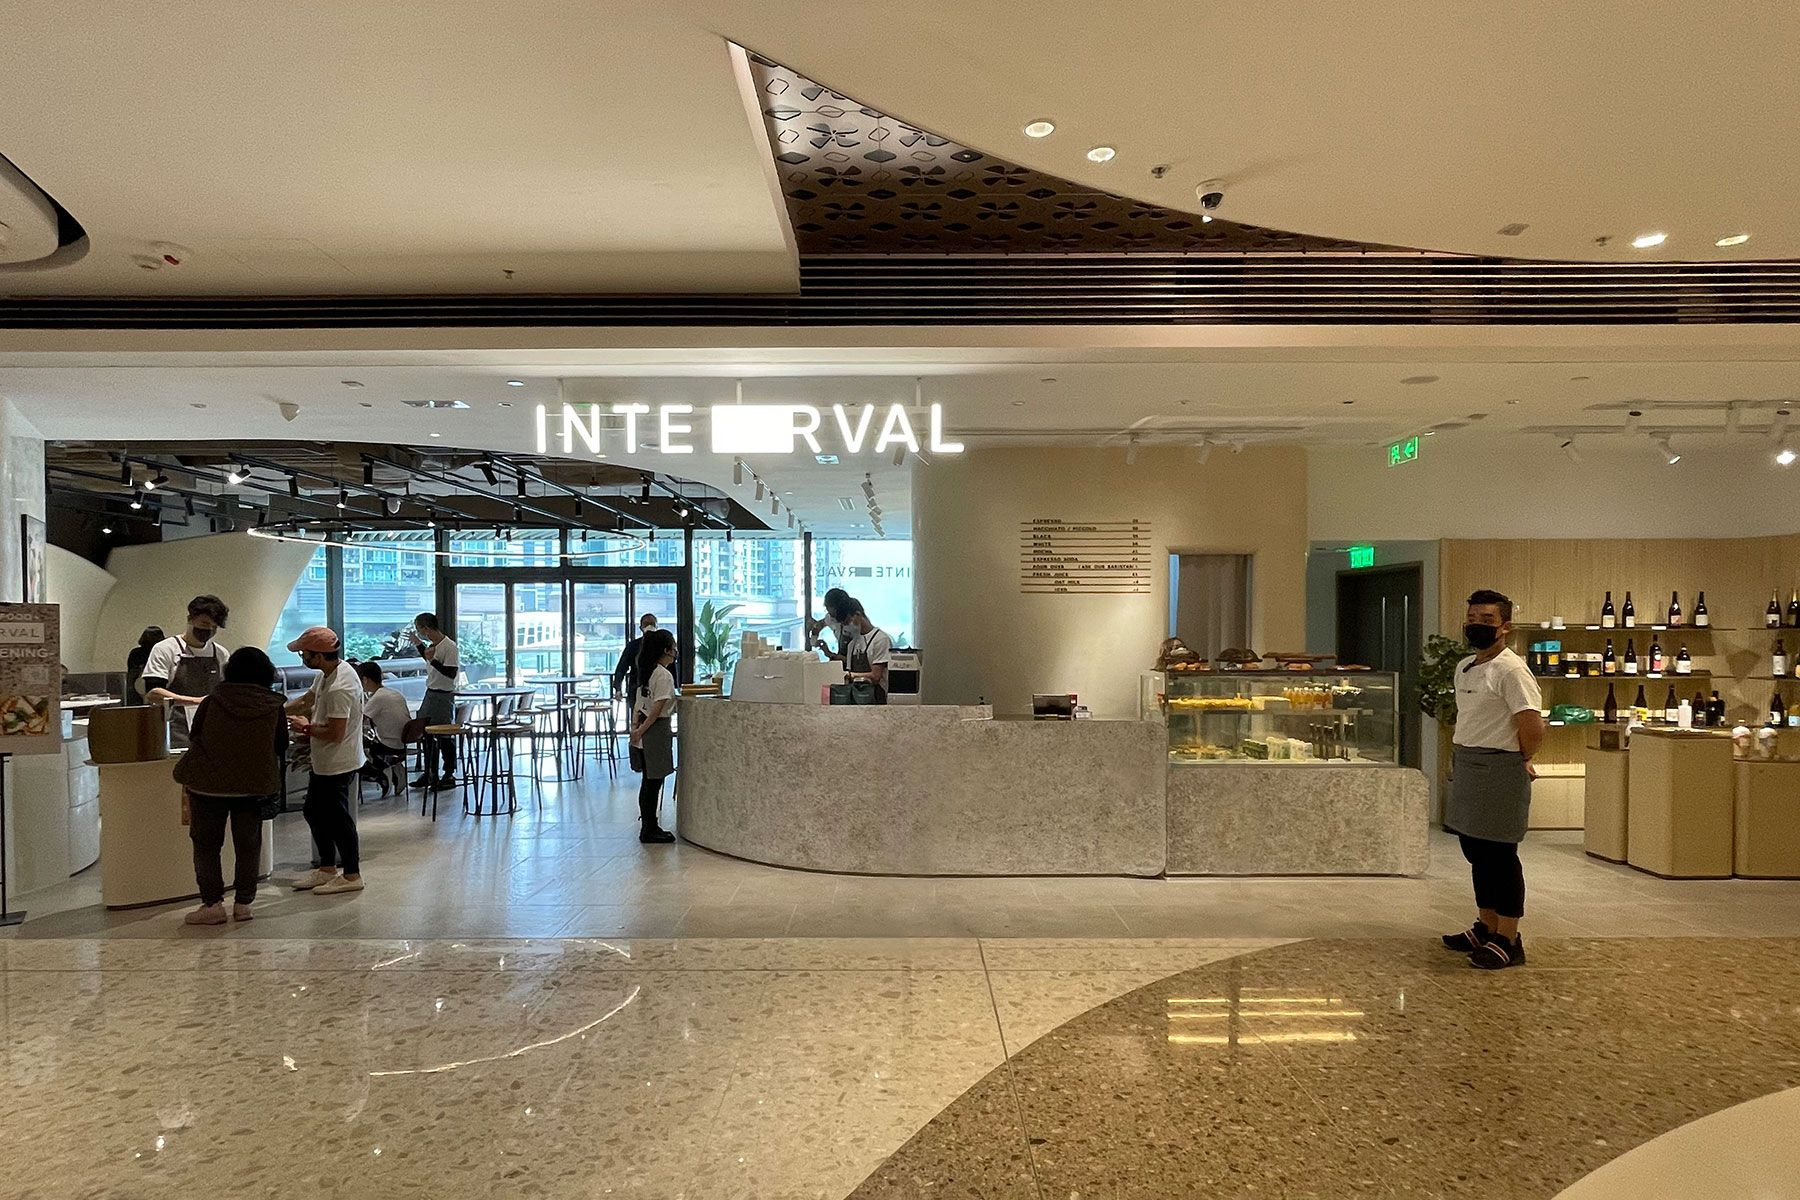 Interval, A Lifestyle Cafe By Twins Kitchen, Expands To Opposite Ends of Hong Kong With Two New Locations